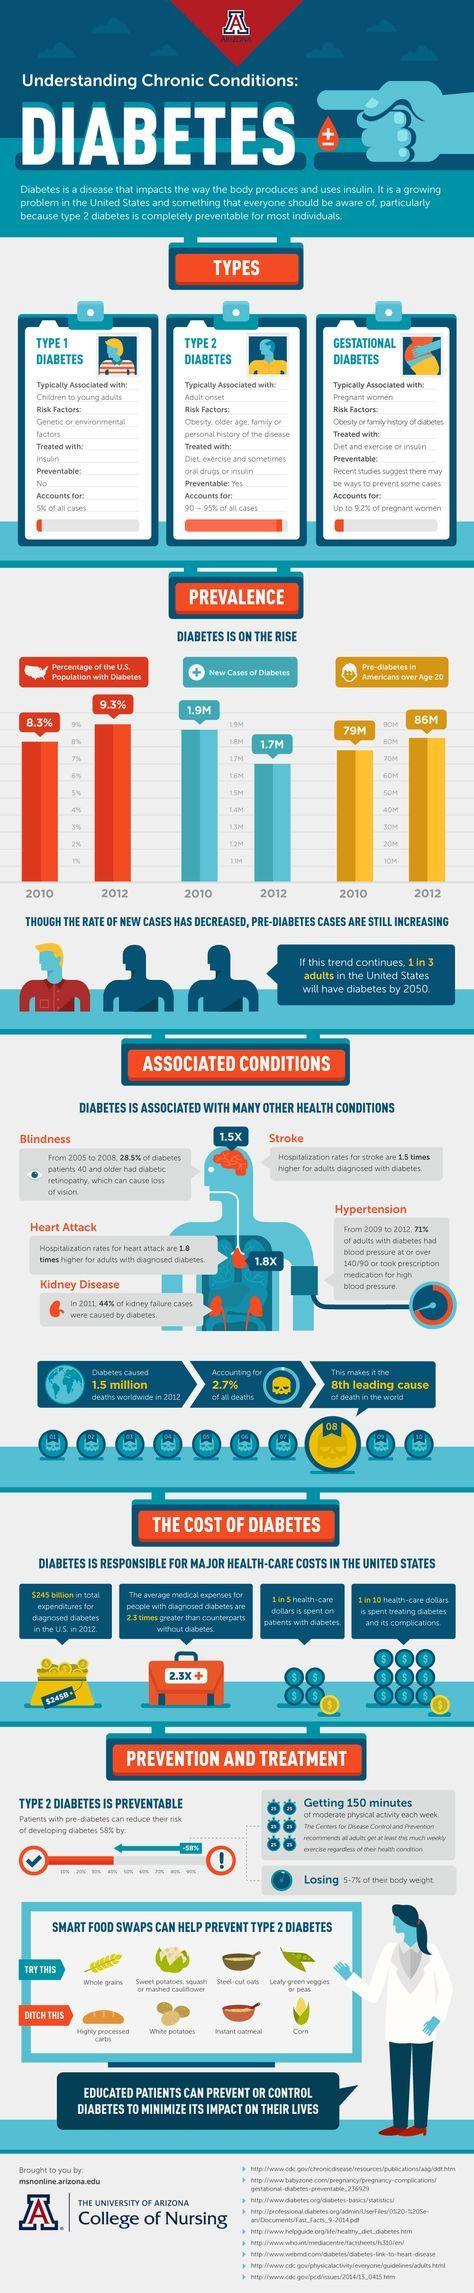 There are so many illnesses out there and understanding chronic conditions once diagnosed is vital to wellness and keeping symptoms under control. Diabetes is a chronic condition that affects many lives, learning How to Fight Type 2 Diabetes is a lifelong journey. How to Fight Type 2 Diabetes Did you know that the majority of …